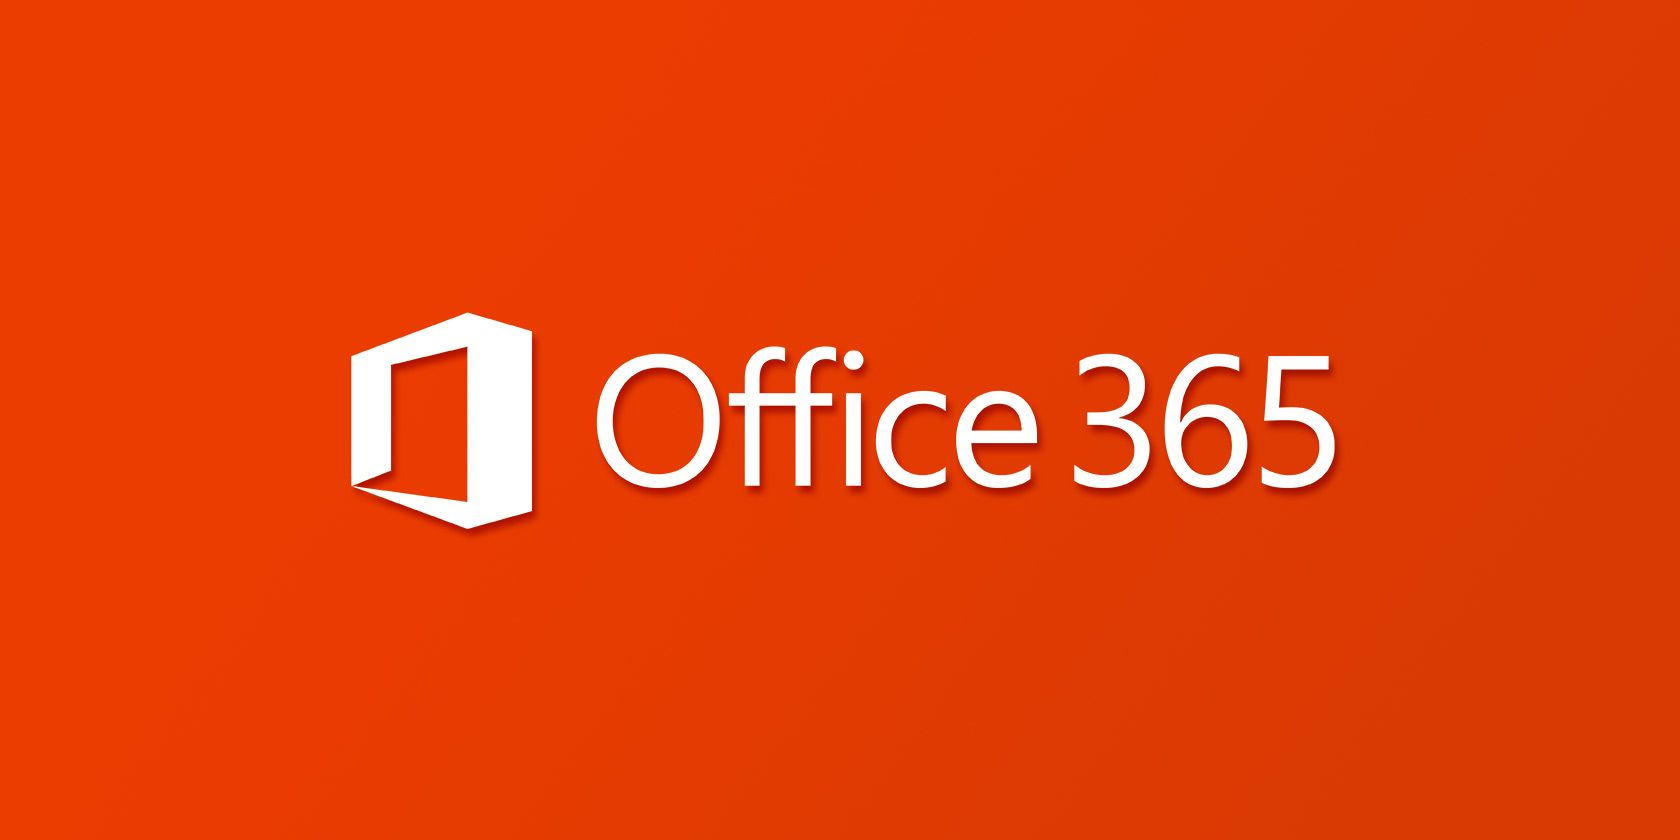 8127f74abea99674504b138064af06c7 - How To Cancel Microsoft Office And Get A Refund